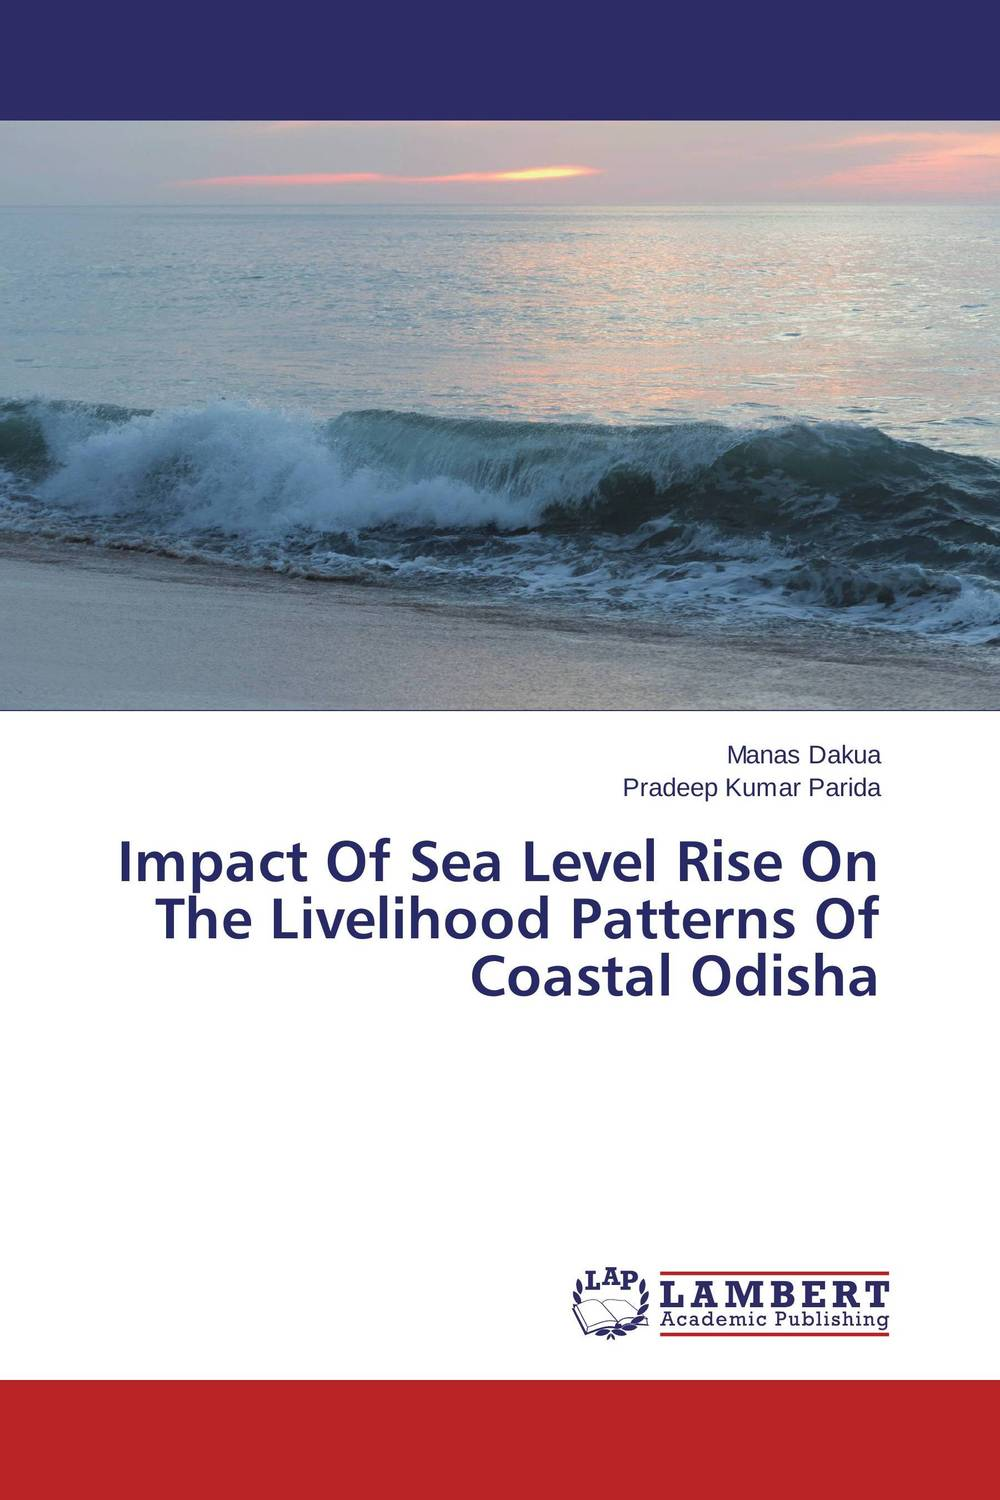 Impact Of Sea Level Rise On The Livelihood Patterns Of Coastal Odisha machu picchu through the fence level 6